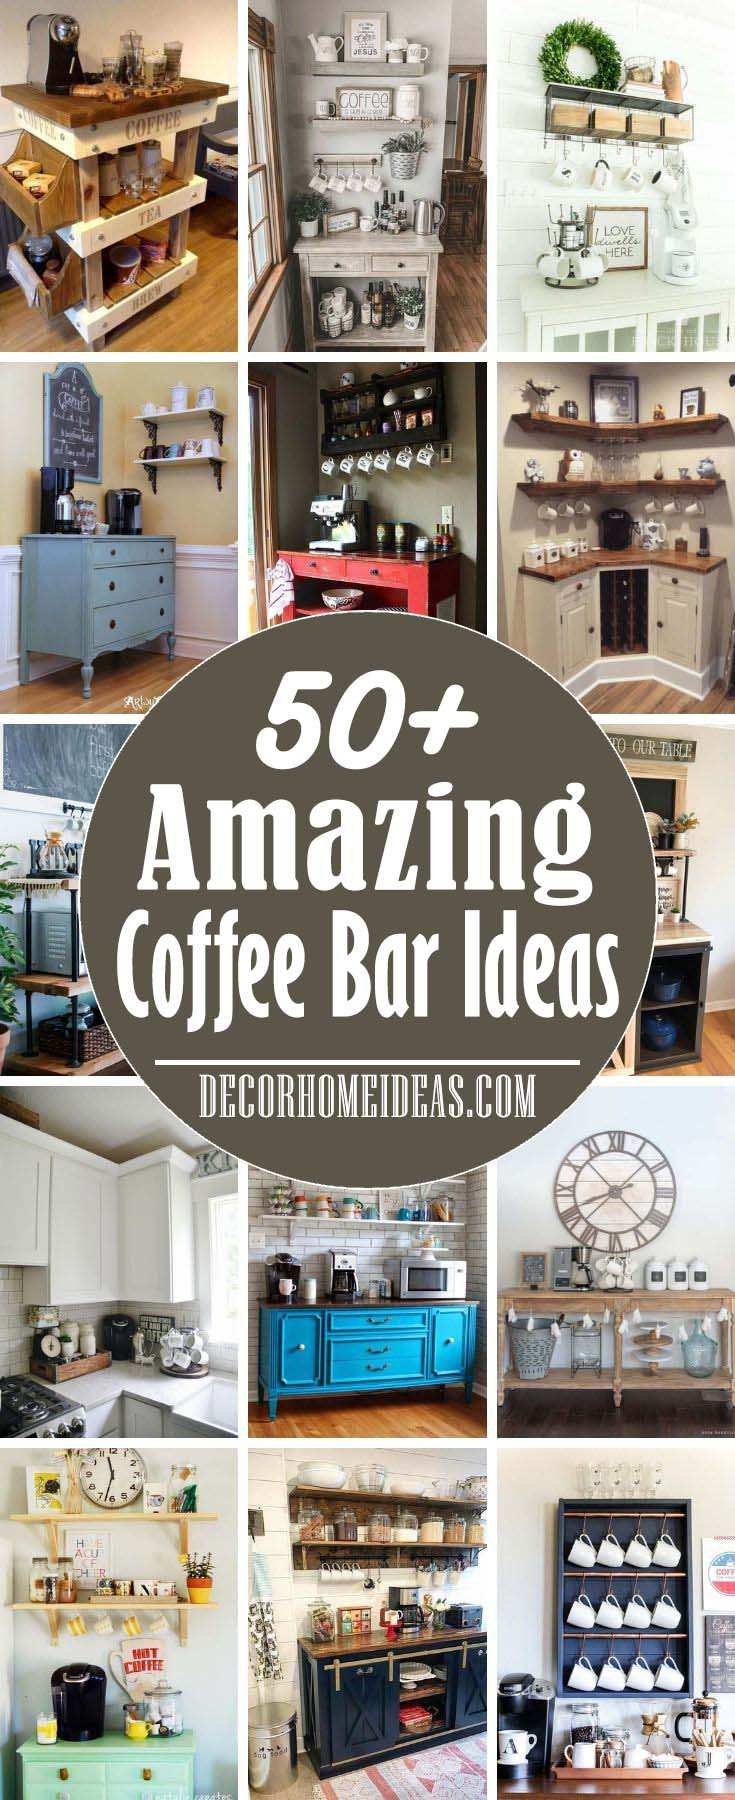 50+ Best DIY Coffee Station Ideas For All Coffee rs Coffee Station Ideas For Kitchen on coffee house kitchen design ideas, kitchen fridge ideas, kitchen coffee center ideas, kitchen decor coffee house, coffee themed kitchen ideas, coffee bar ideas, kitchen wine station, kitchen couch ideas, kitchen buffet ideas, kitchen bookshelf ideas, kitchen baking station, kitchen library ideas, kitchen beverage station, martha stewart kitchen ideas, country living 500 kitchen ideas, great kitchen ideas, kitchen bathroom ideas, kitchen designs country living, coffee break set up ideas, kitchen cabinets,